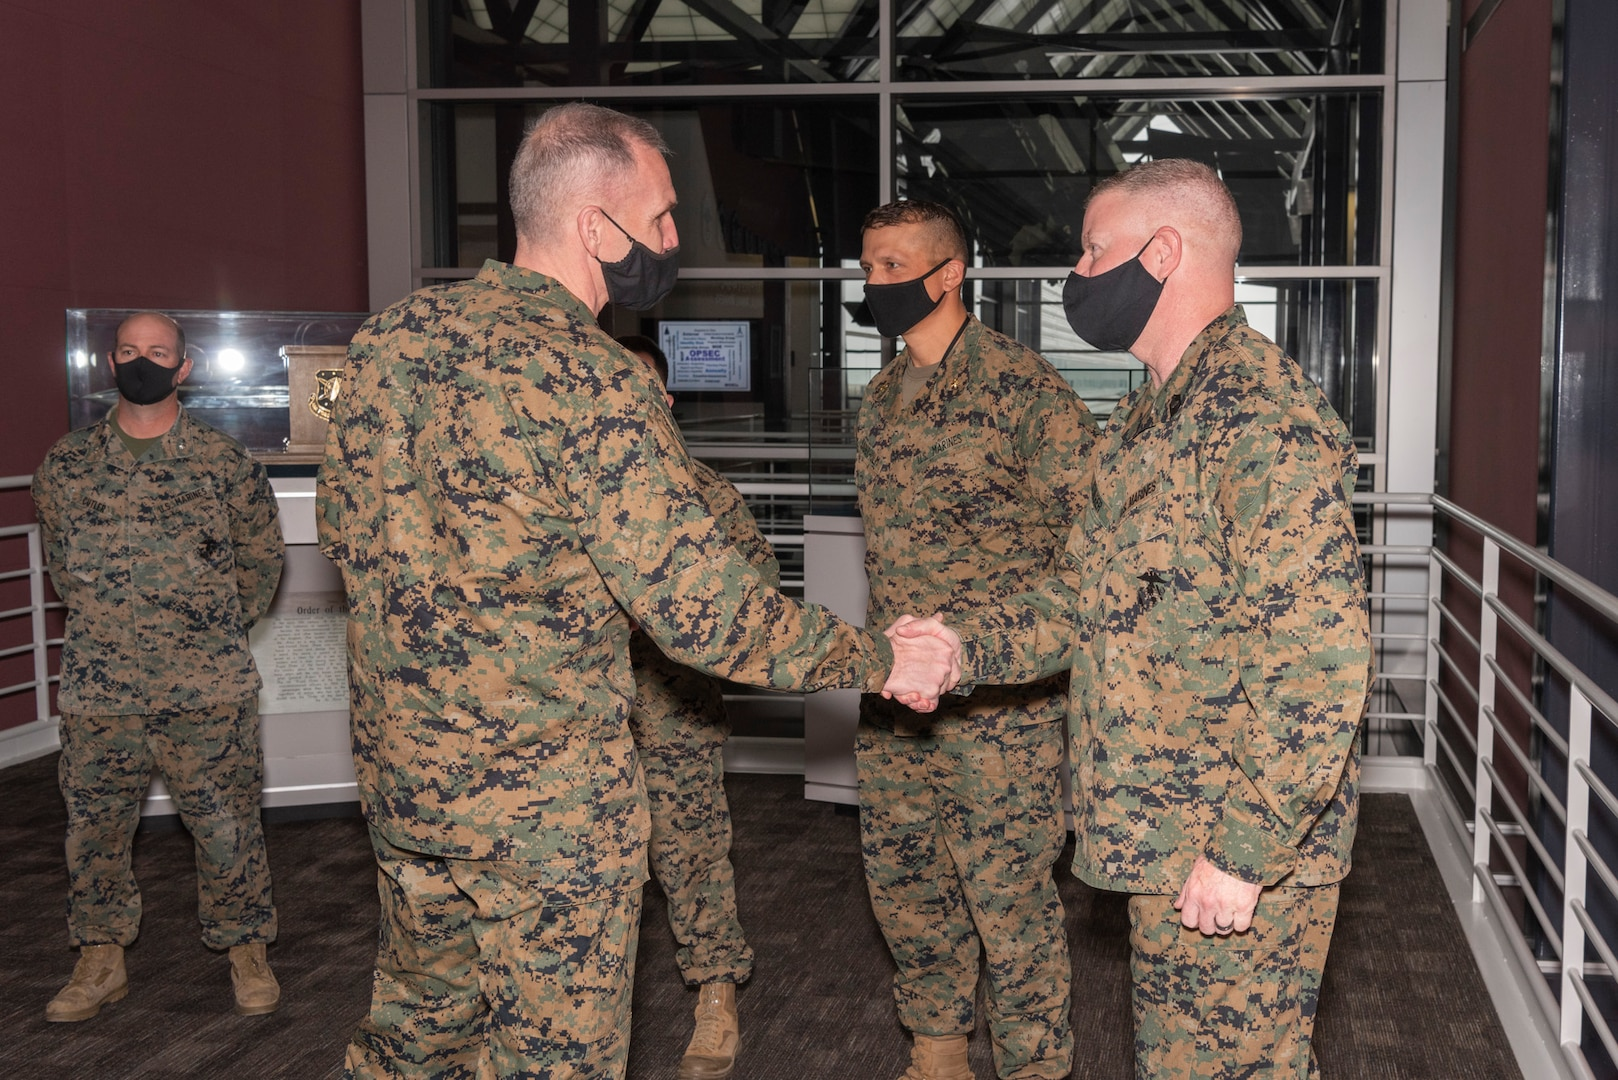 U.S. Marine Corps Master Gunnery Sgt. Scott Stalker (right), U.S. Space Command command senior enlisted leader, greets Gen. Gary Thomas, assistant commandant of the Marine Corps on Dec. 11, 2020, at USSPACECOM headquarters at Peterson Air Force Base, Colorado.